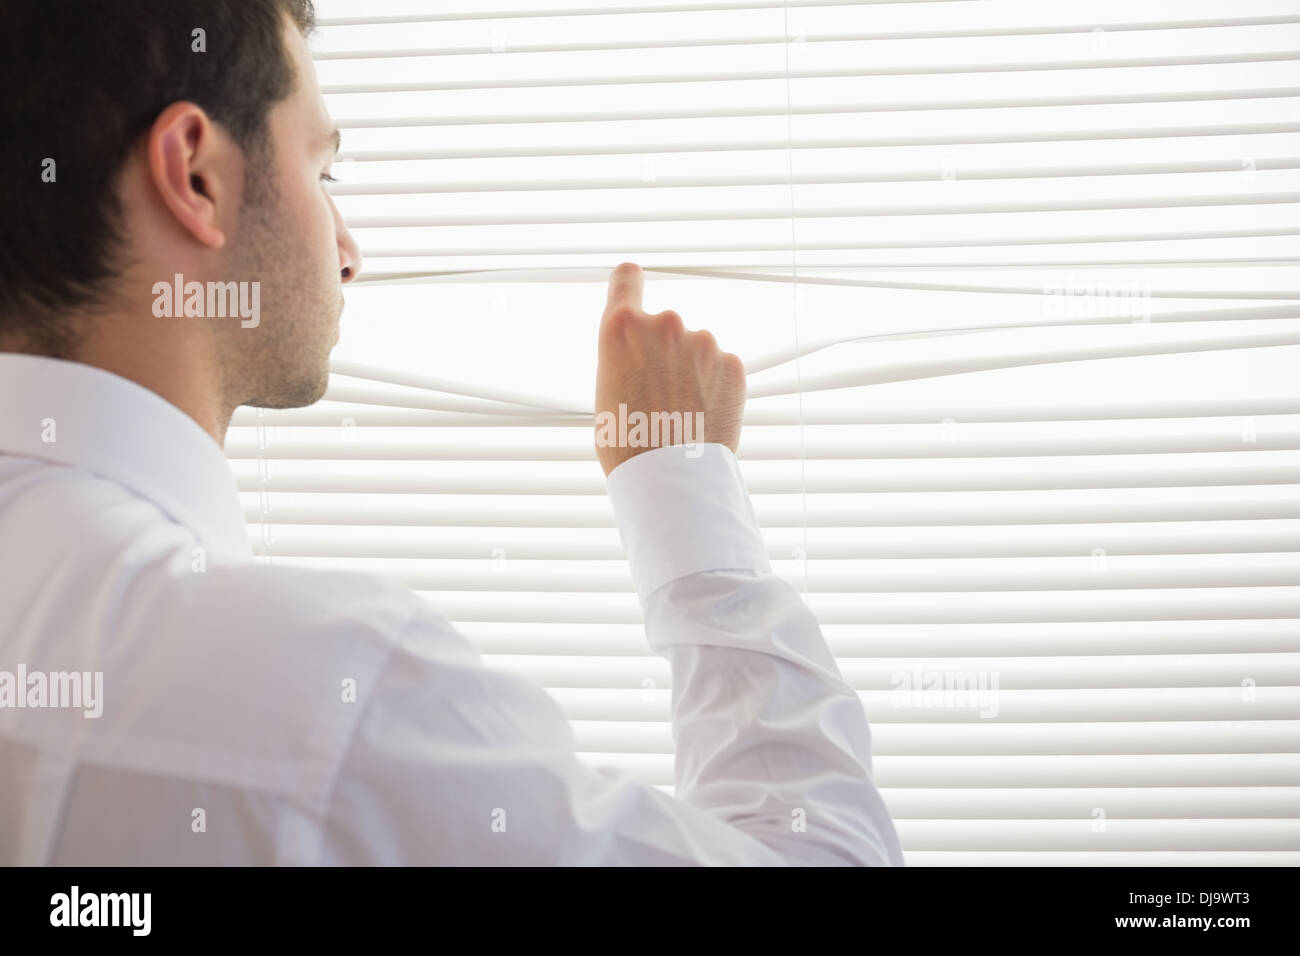 Rear view of handsome businessman spying through roller blind - Stock Image